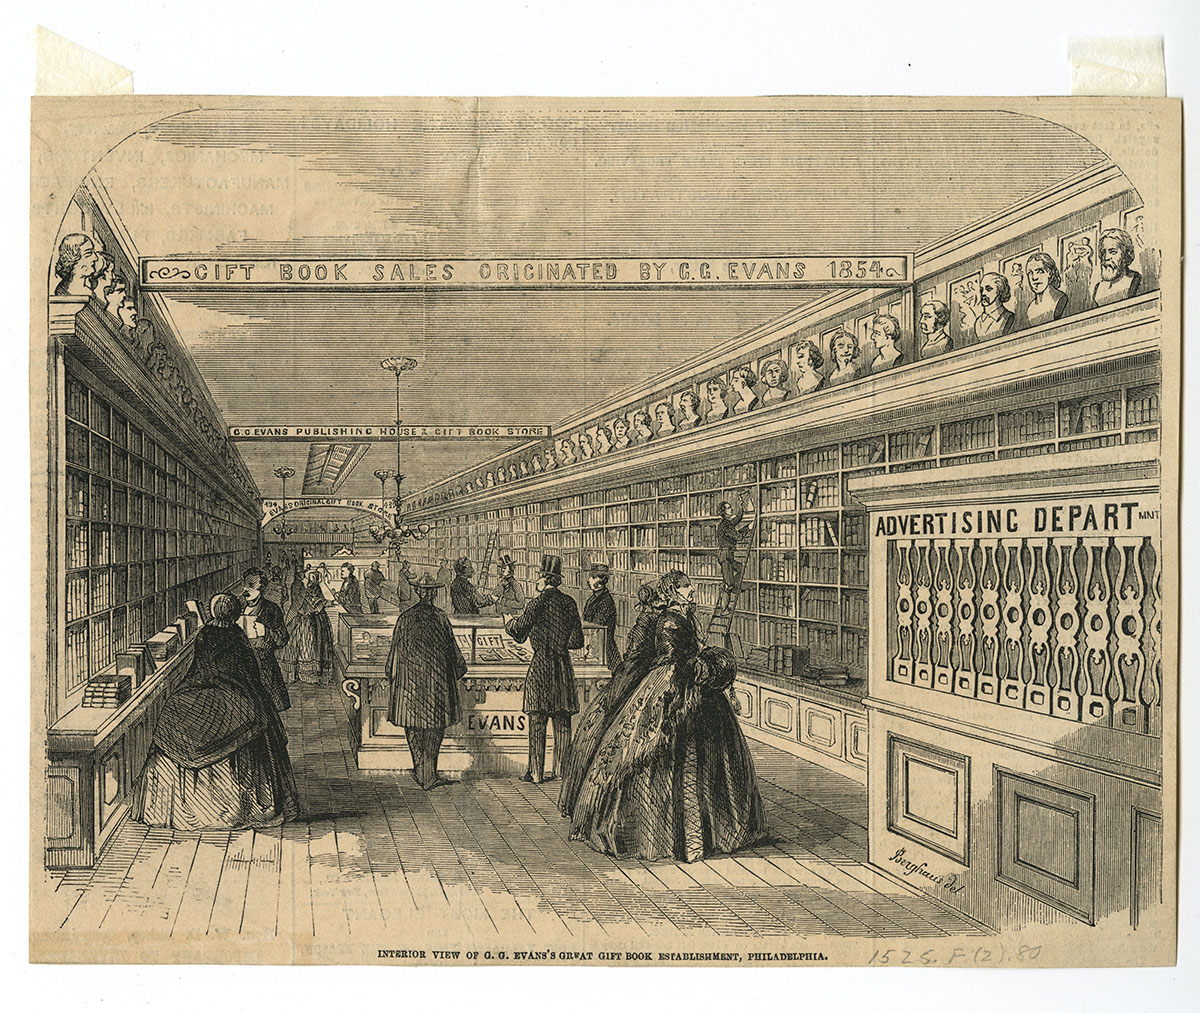 Interior view of G.G. Evans's Great Gift Book Establishment, Philadelphia (Philadelphia, ca. 1860).